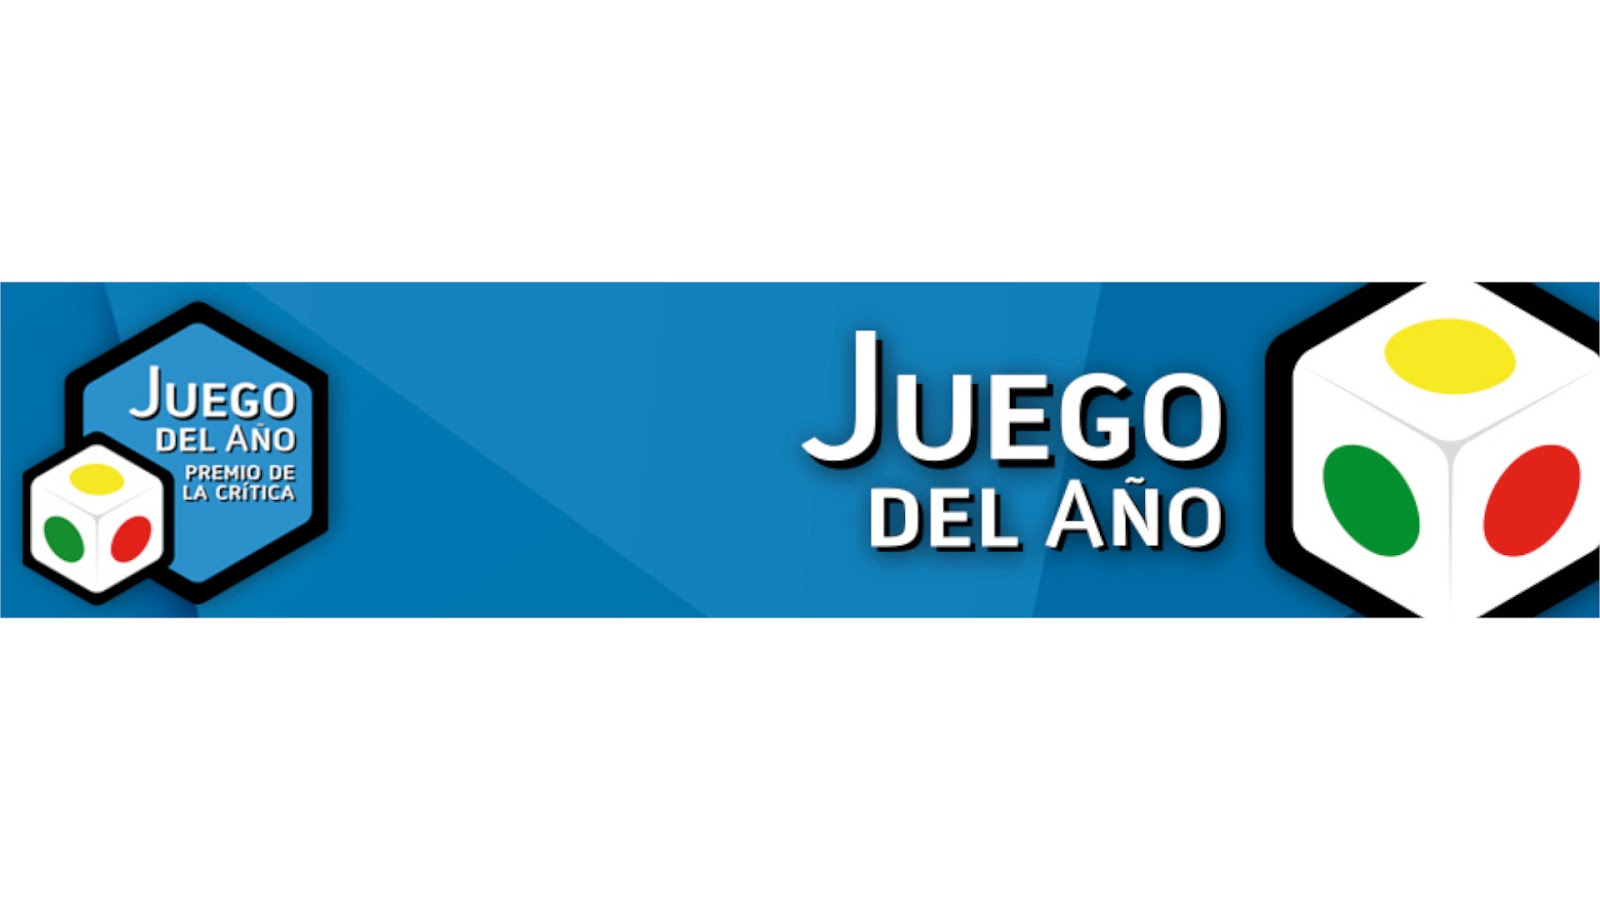 News Collider - Board Game News New Juego Del Ano Finalist Announced